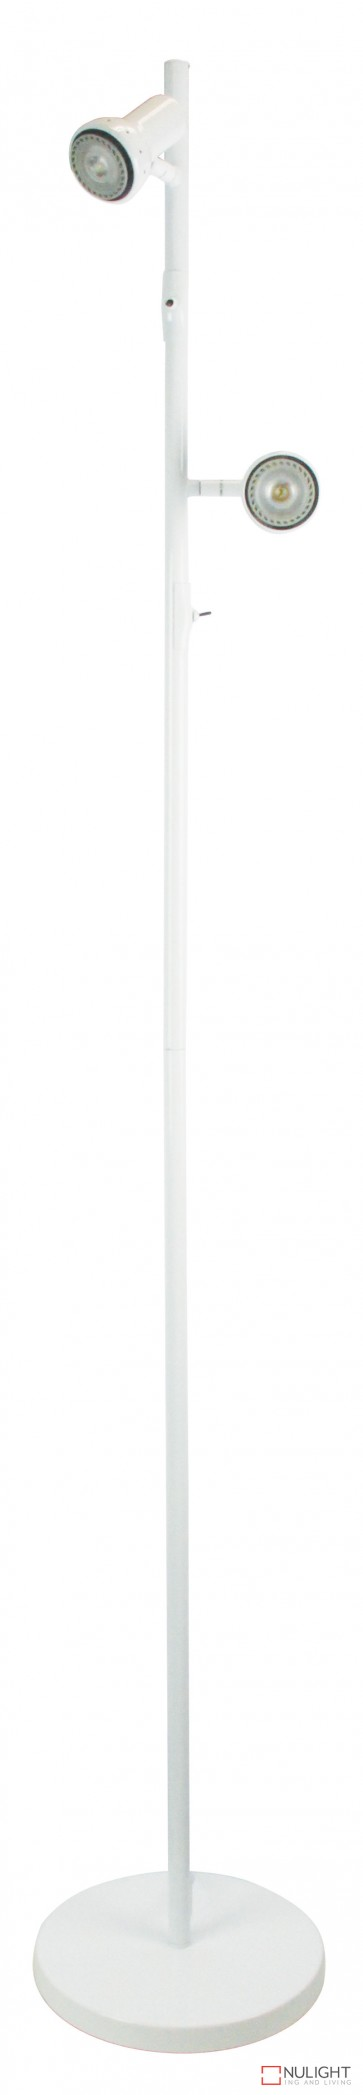 Daxam Led Twin Floor Lamp White ORI